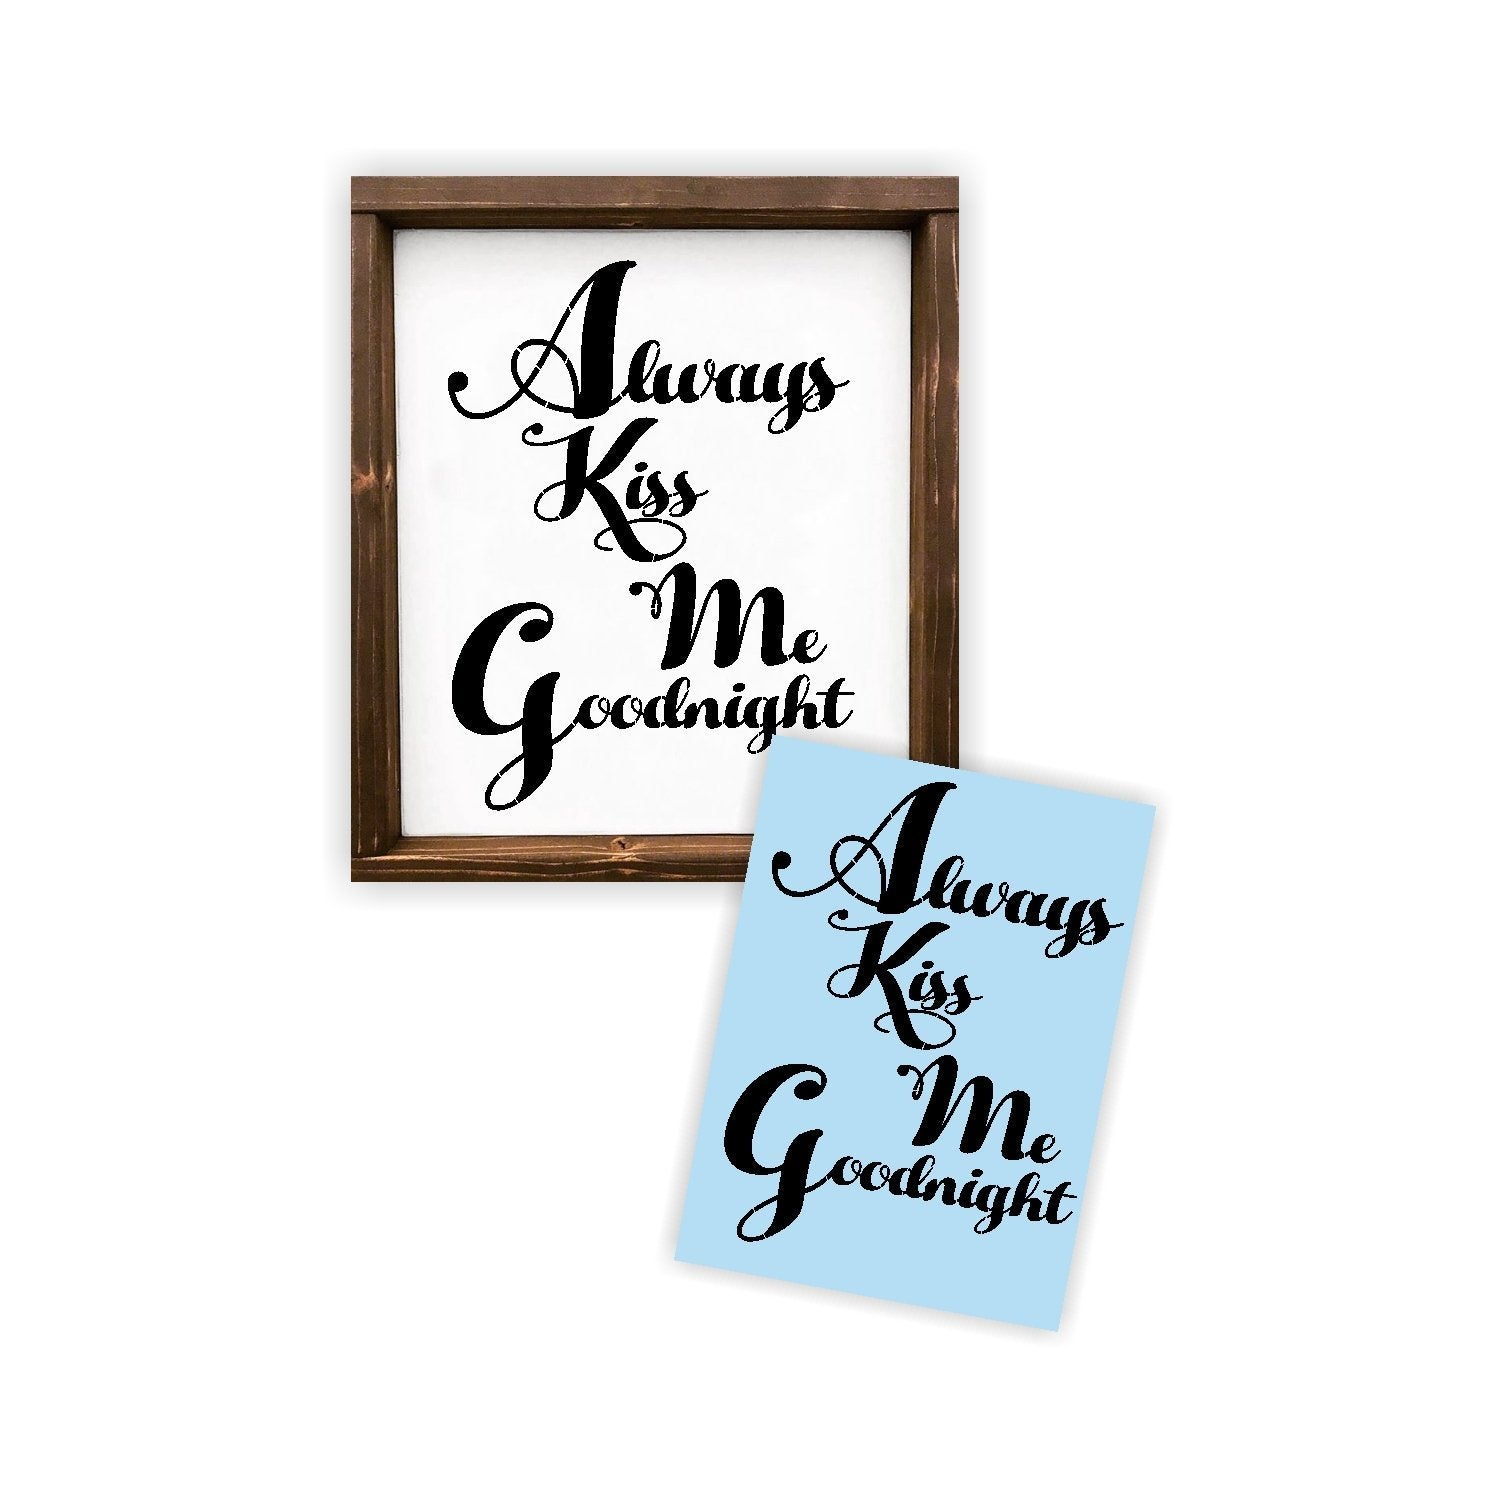 Always Kiss Me Goodnight Stencil - Paint a Wood Sign - Reusable